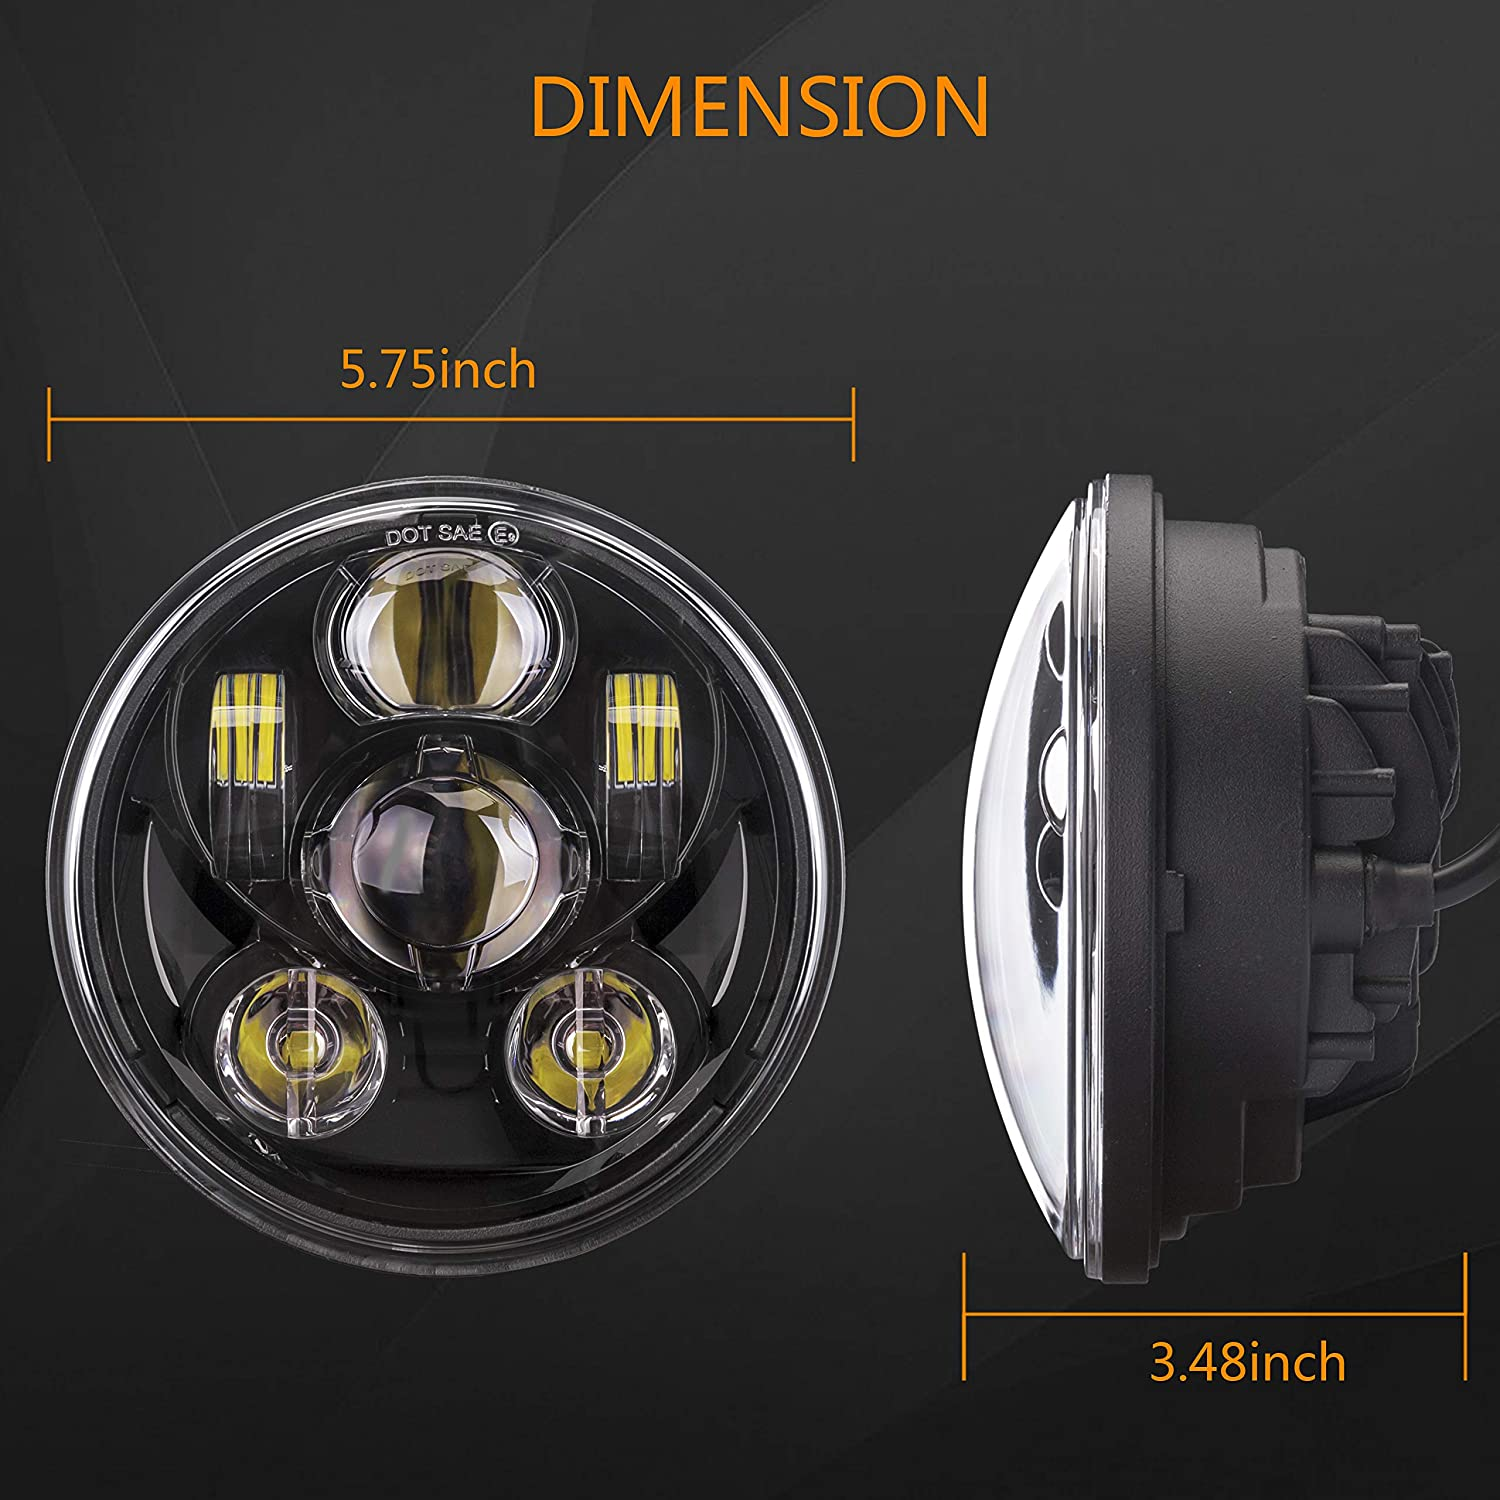 XINYOU 5-3//4 5.75 Harley LED Motorcycle Headlight with Hi//Low Beam Projector Driving Light for Harley Davidson Iron 883 Sportster Dyna Triple Low Rider Super Wide Glide Street Bob